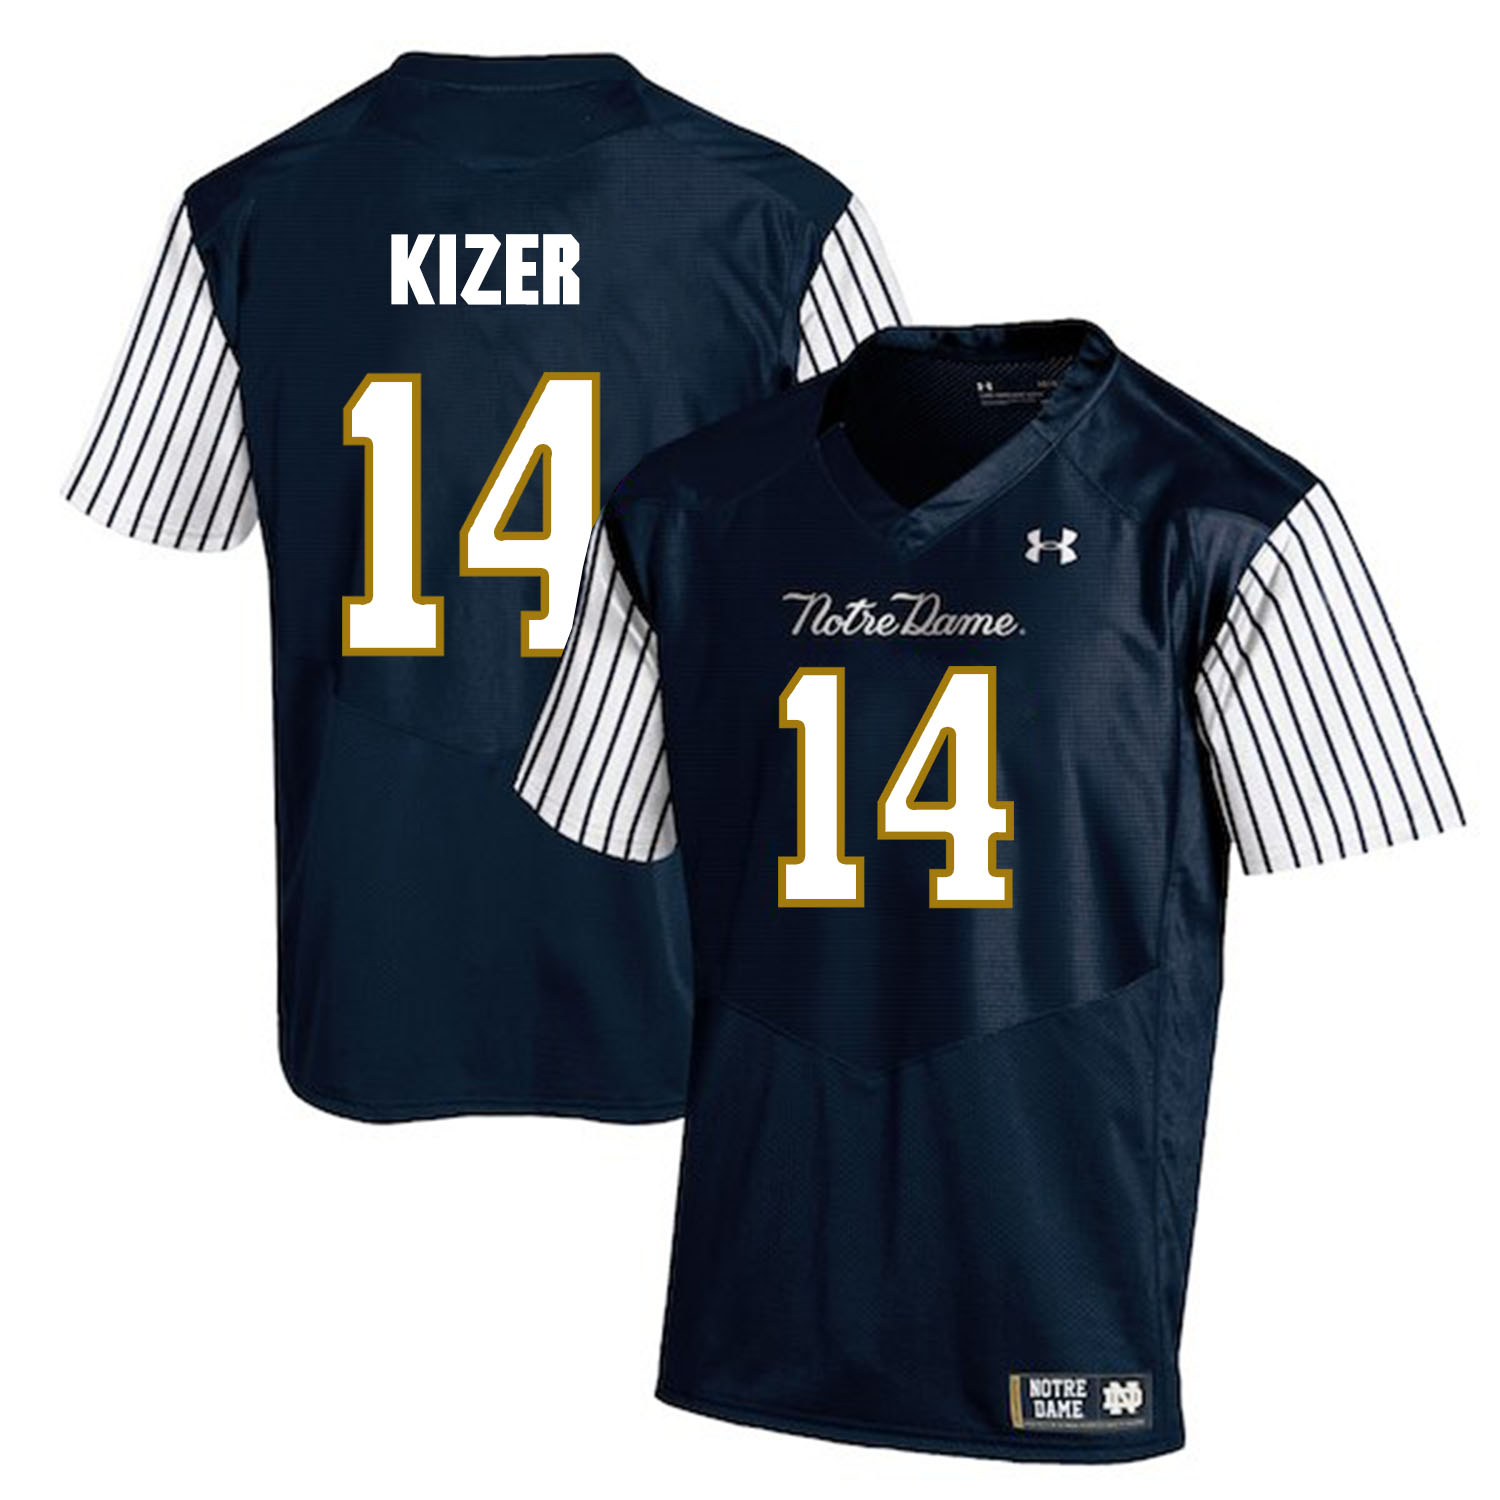 Notre Dame Fighting Irish 14 DeShone Kizer Navy College Football Jersey